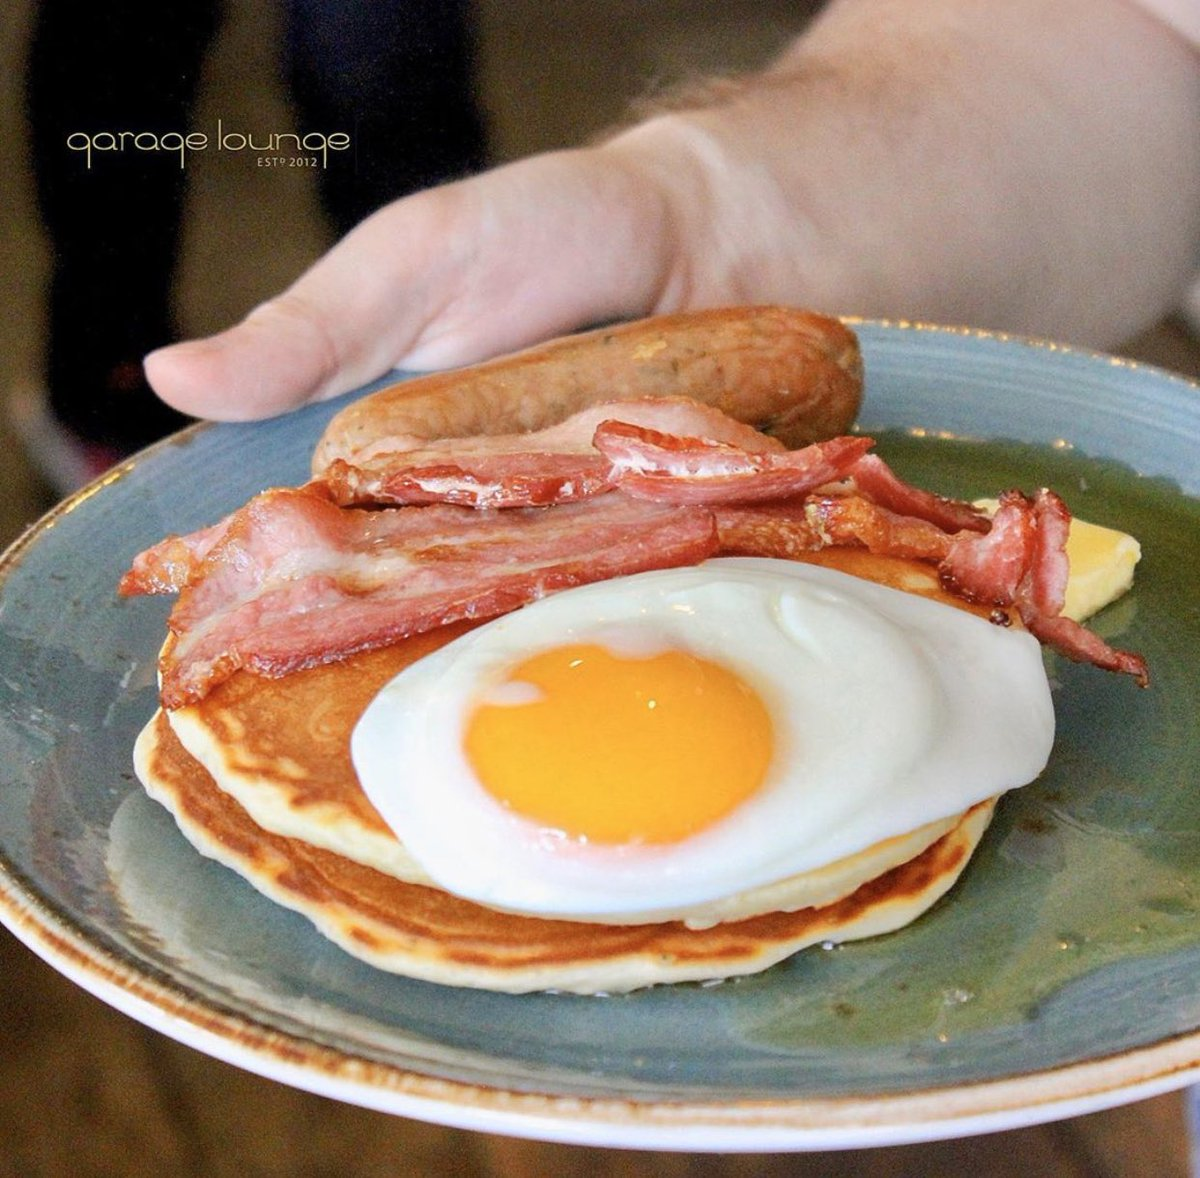 Friday Motivation 🇺🇸🥓🥞 THE AMERICAN BREAKFAST 🇺🇸🥓🥞 Treat yourself to the ultimate morning. Pancakes, streaky bacon, sausage, fried egg, butter & maple syrup. 🤤🤤 #friday #american #sausage #fresh #bacon #work #eggs #poached #cafe #breakfast #spinach #brunch #lunch